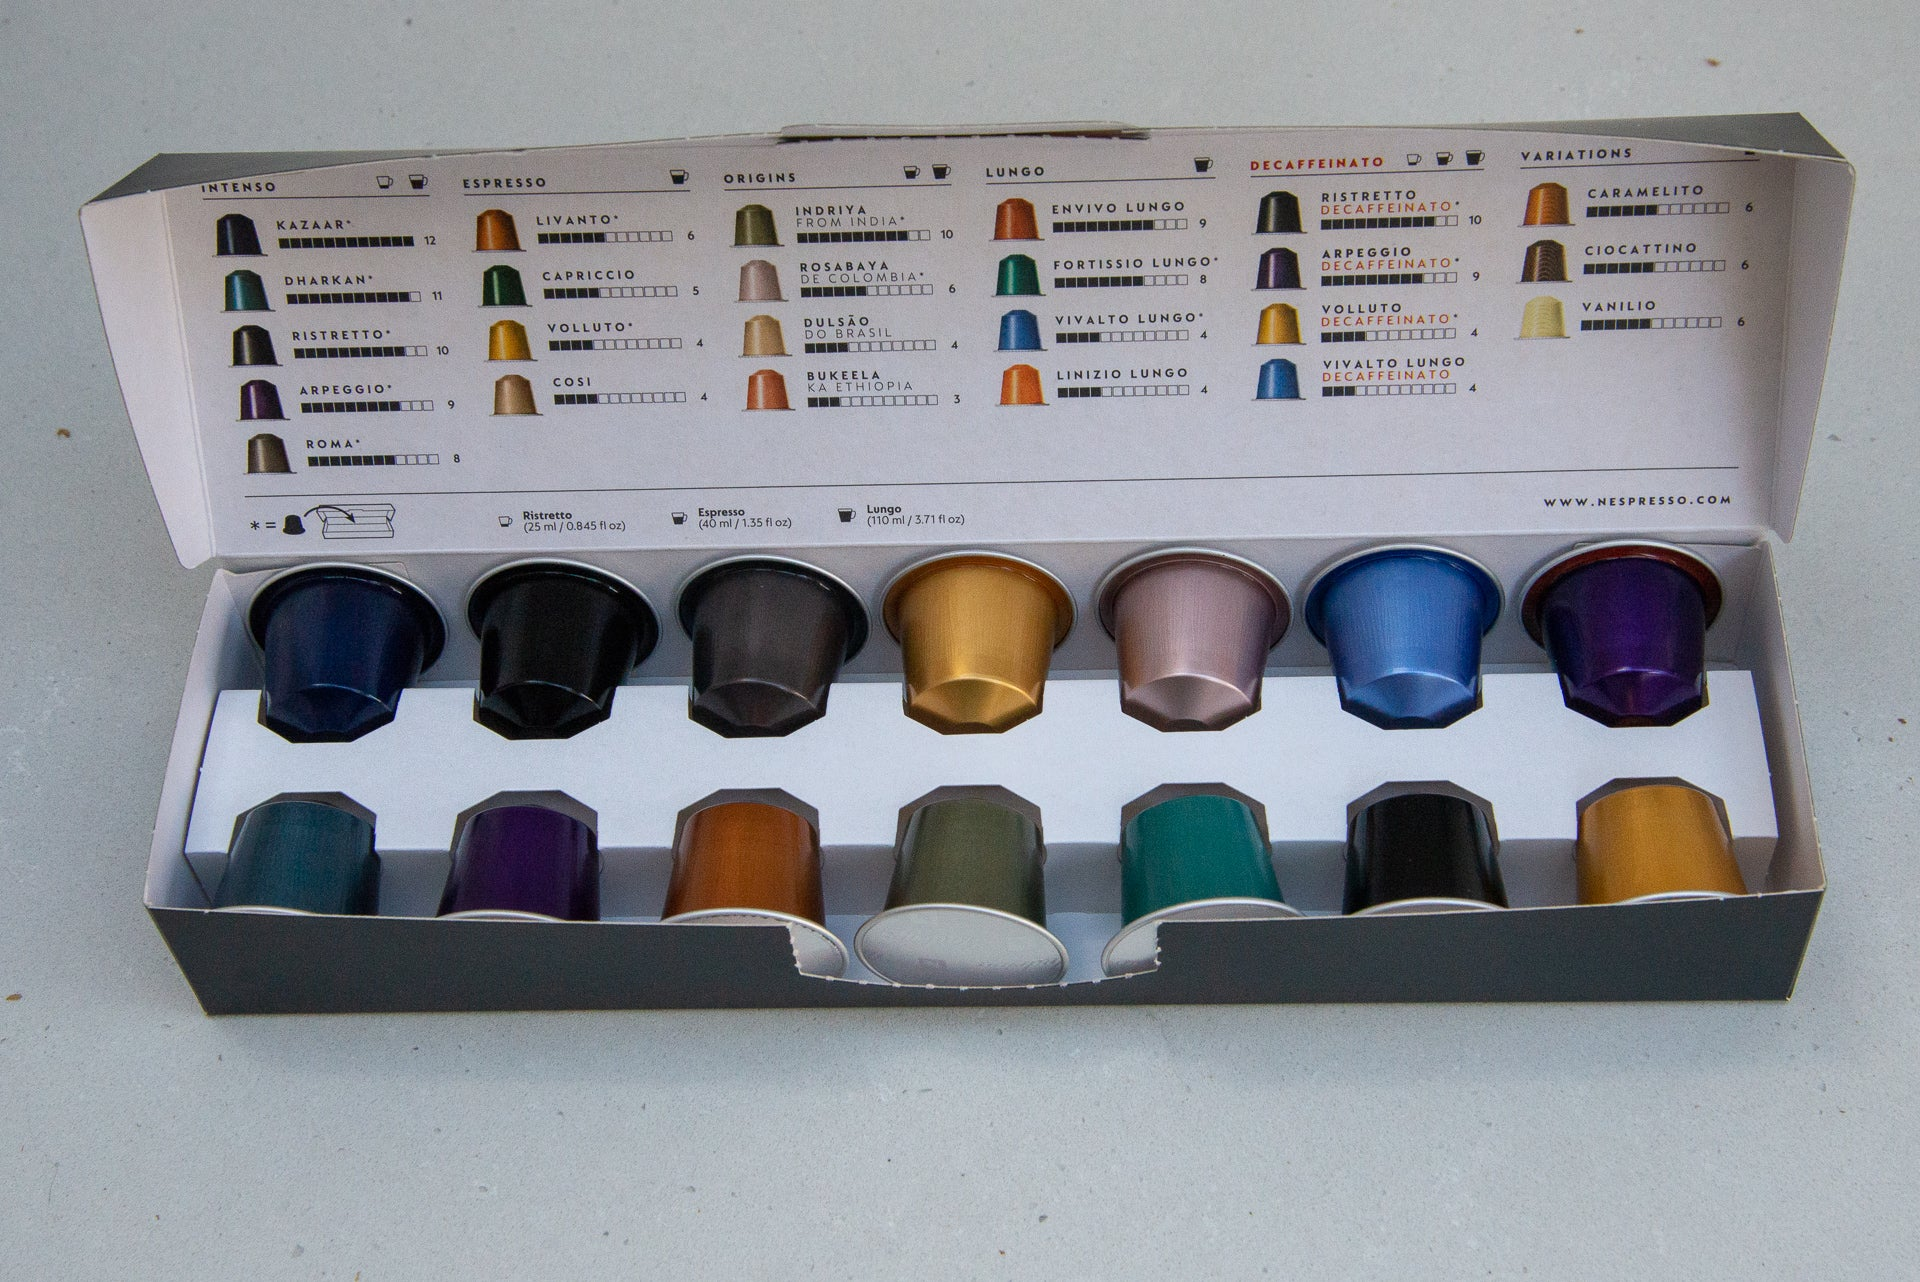 Best Nespresso capsules: pods rated and reviewed | Trusted Reviews